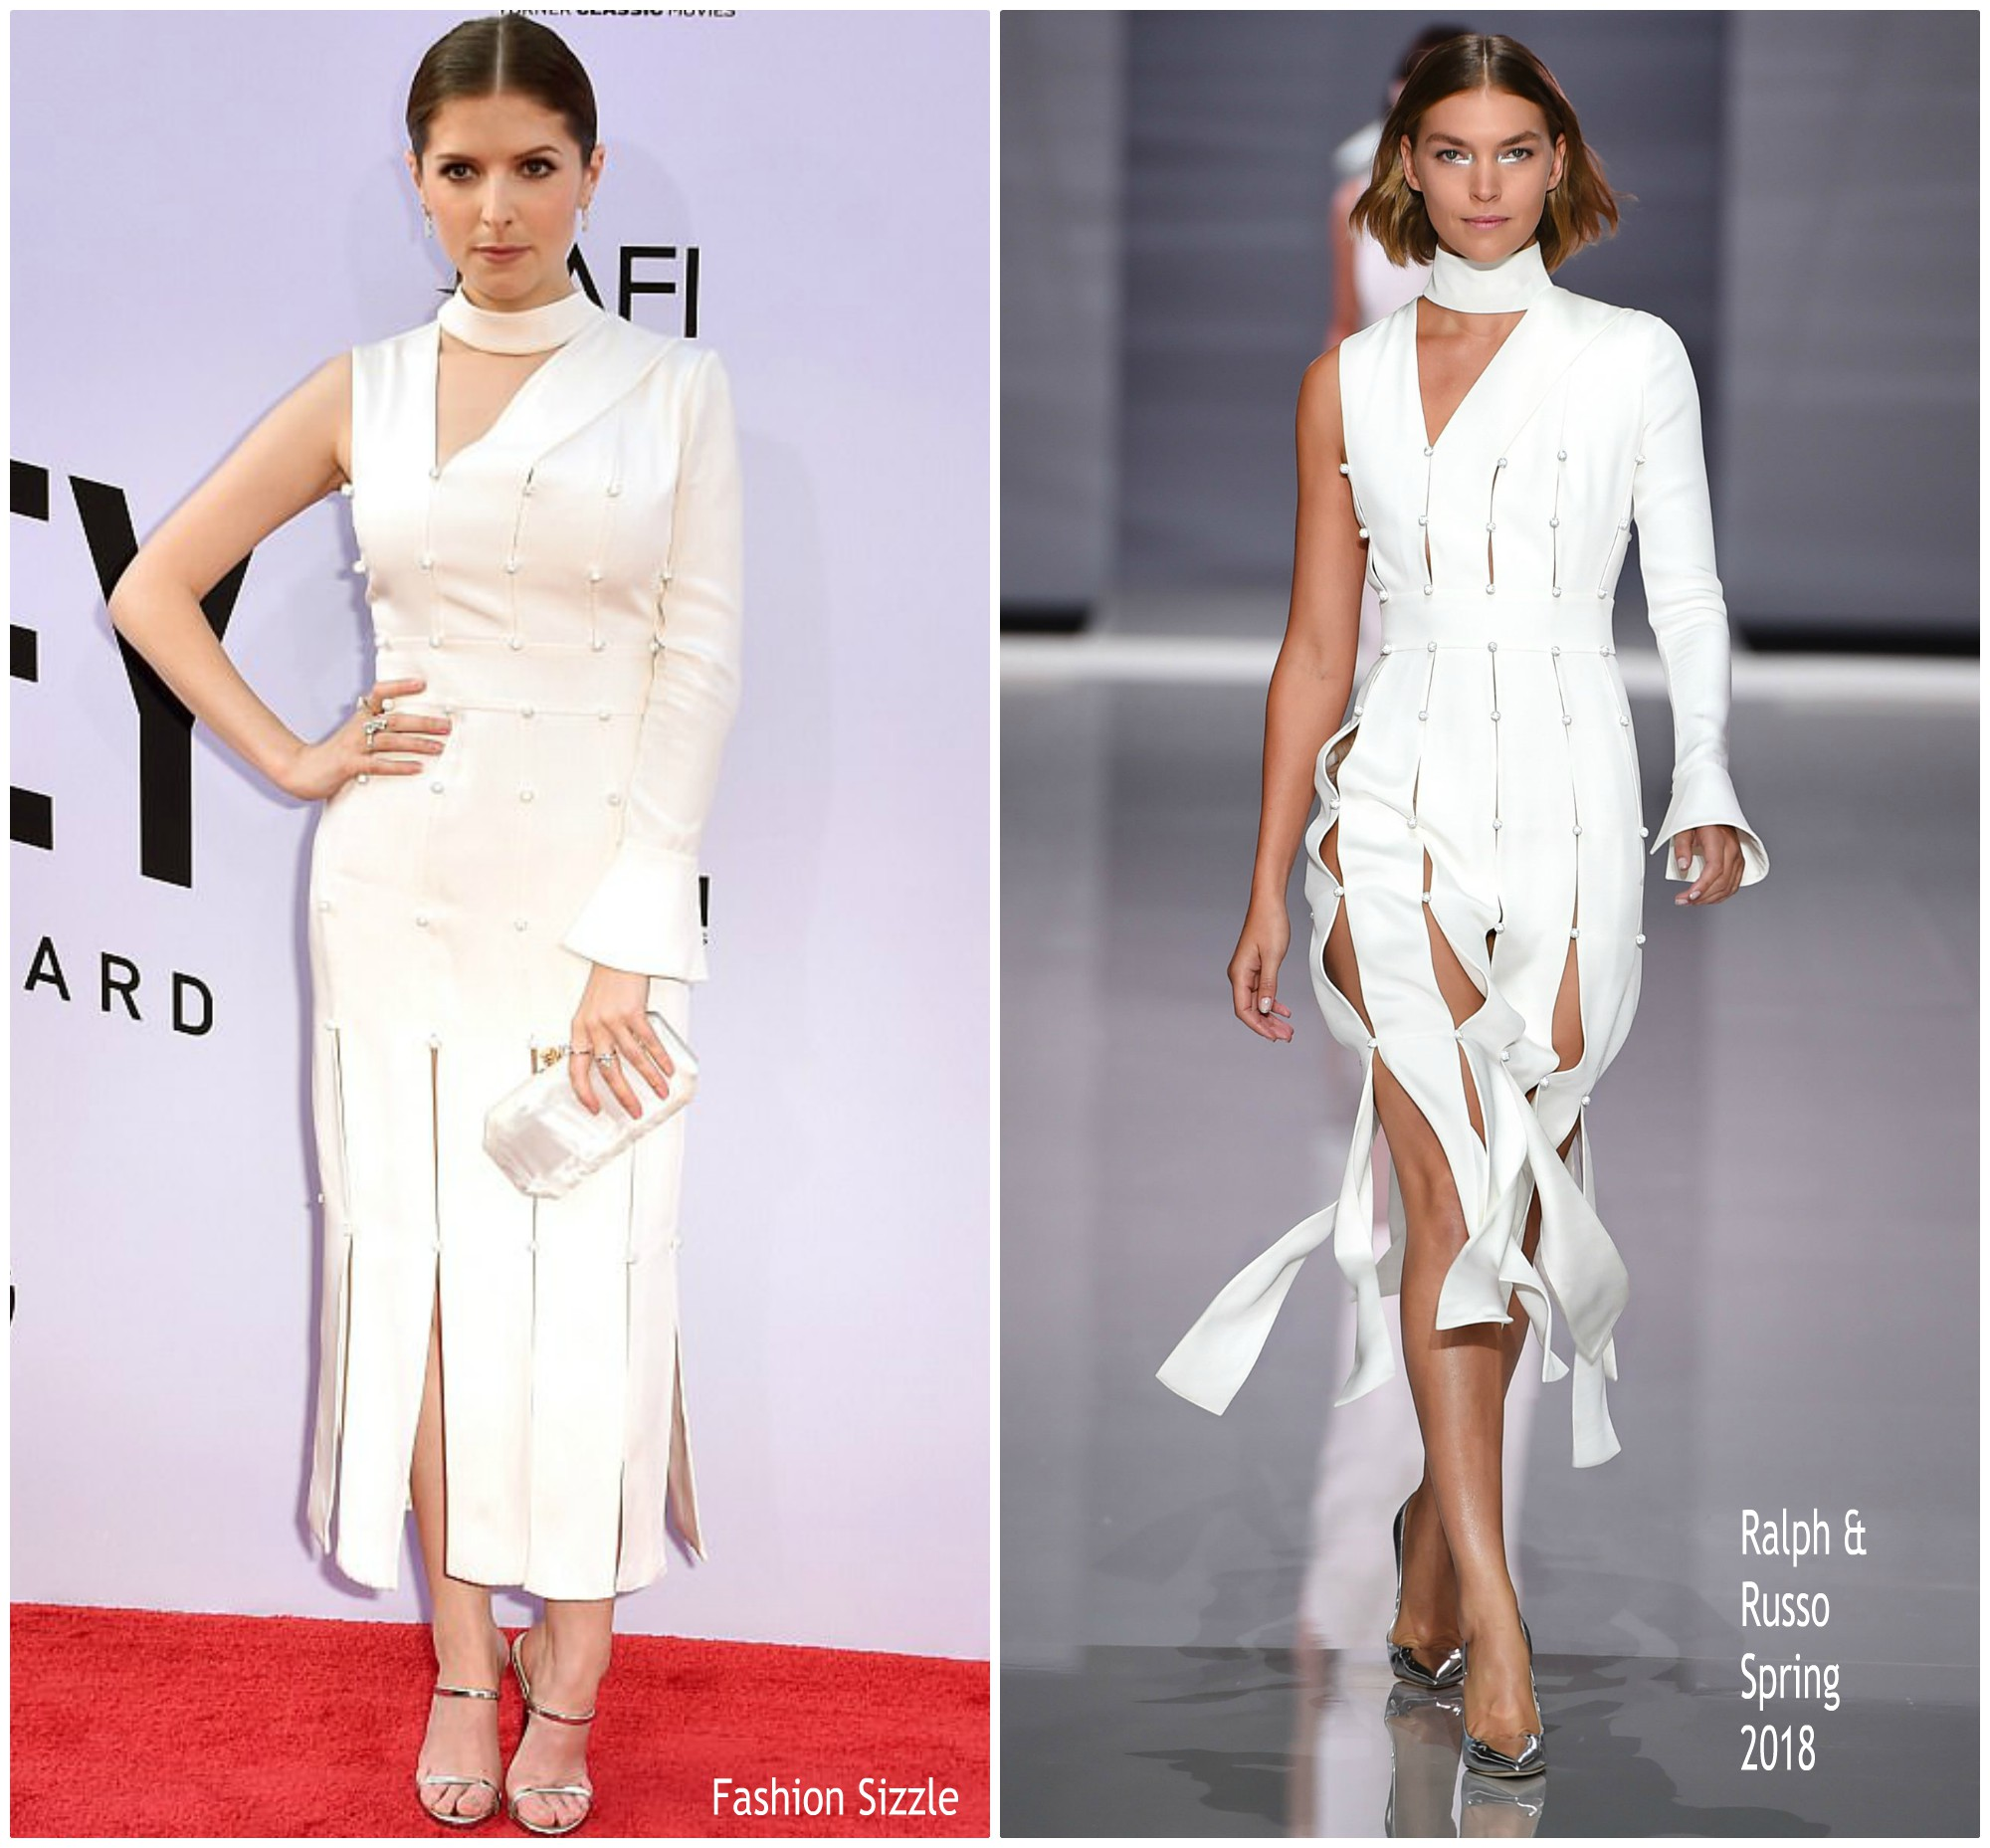 anna-kendrick-in-ralph-russo-american-film-institutes-46th-life-achievement-award-gala-tribute-george-clooney